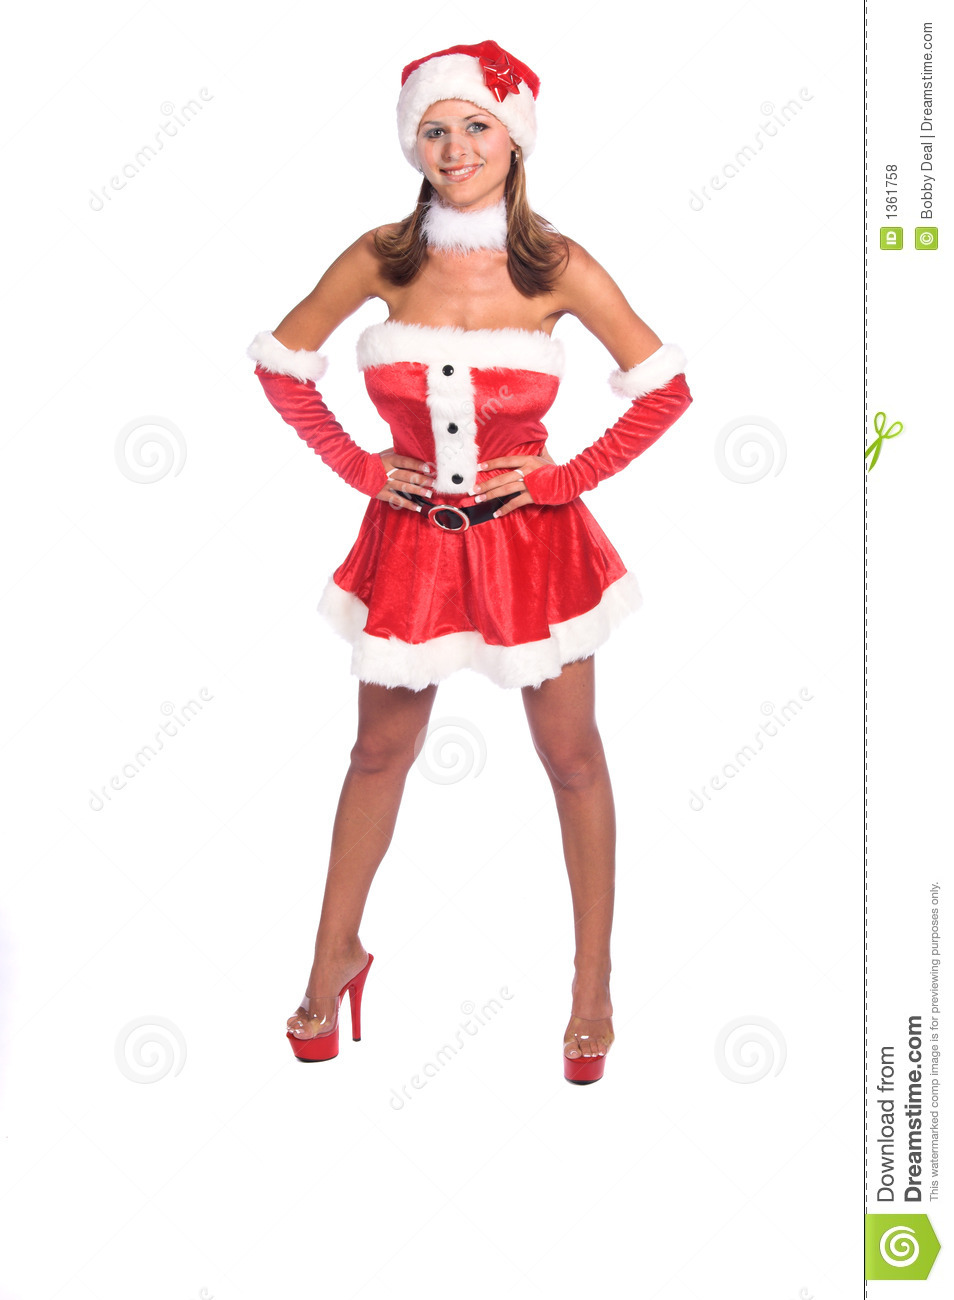 Sexy mrs claus pictures